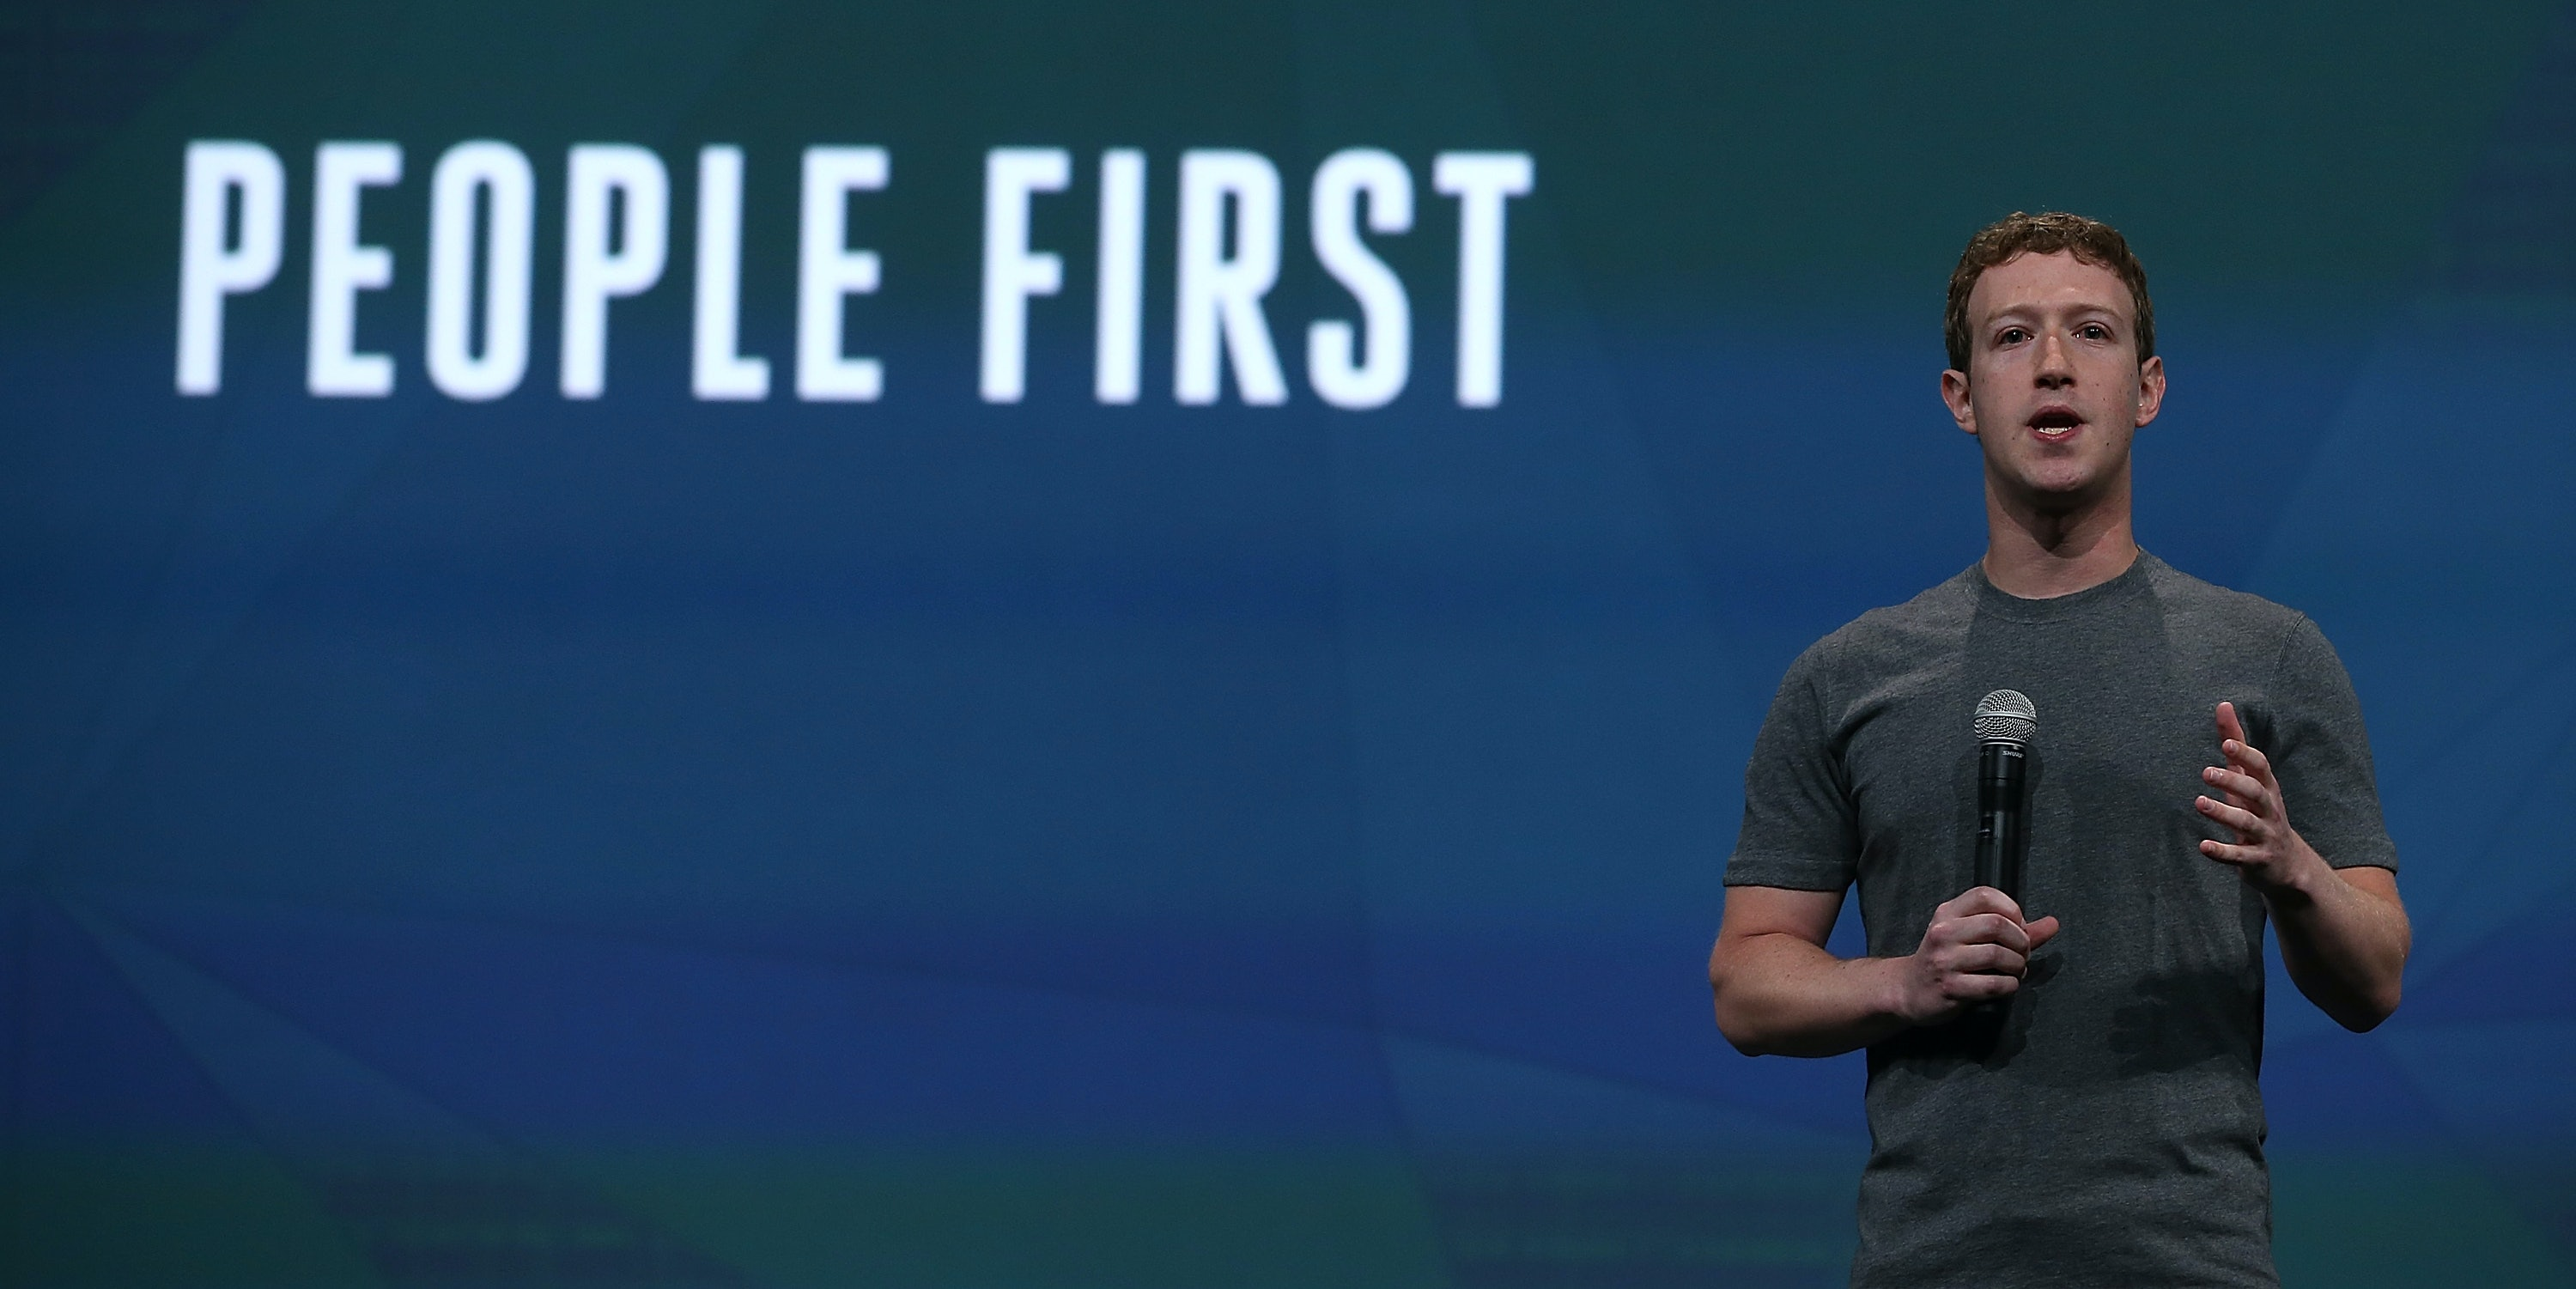 SAN FRANCISCO, CA - APRIL 30: Facebook CEO Mark Zuckerberg delivers the opening kenote at the Facebook f8 conference on April 30, 2014 in San Francisco, California. Facebook CEO Mark Zuckerberg kicked off the annual one-day F8 developers conference.